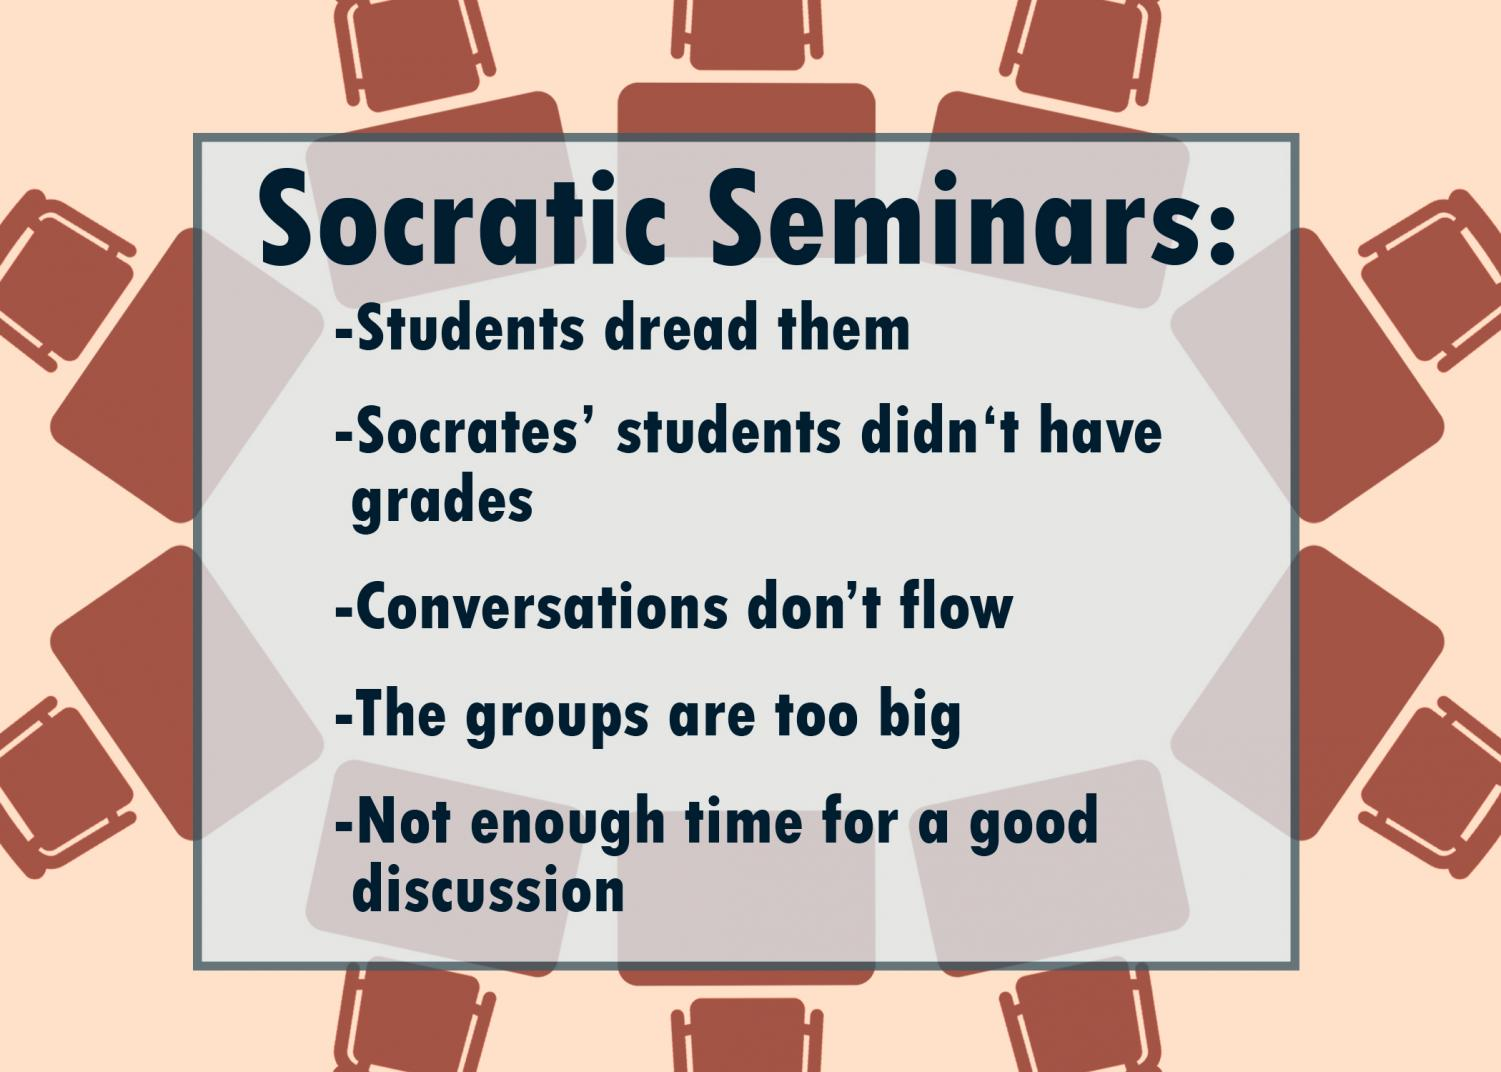 To make discussions more productive, Socratic seminars shouldn't be graded.